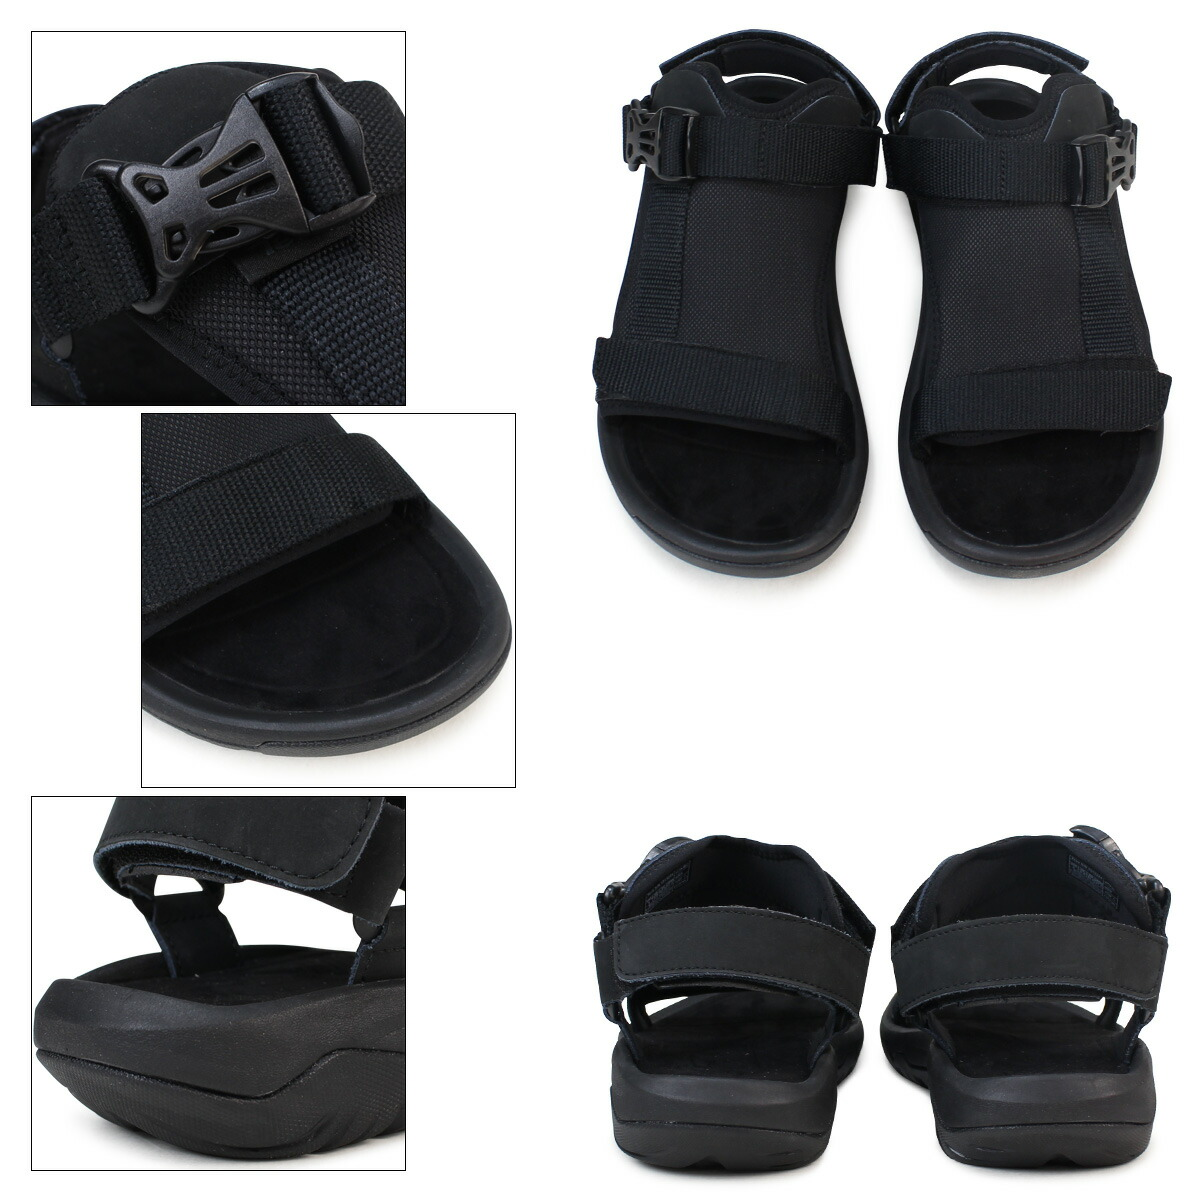 6f7568a30 Because I developed sports sandals with a strap for the first time in the  world